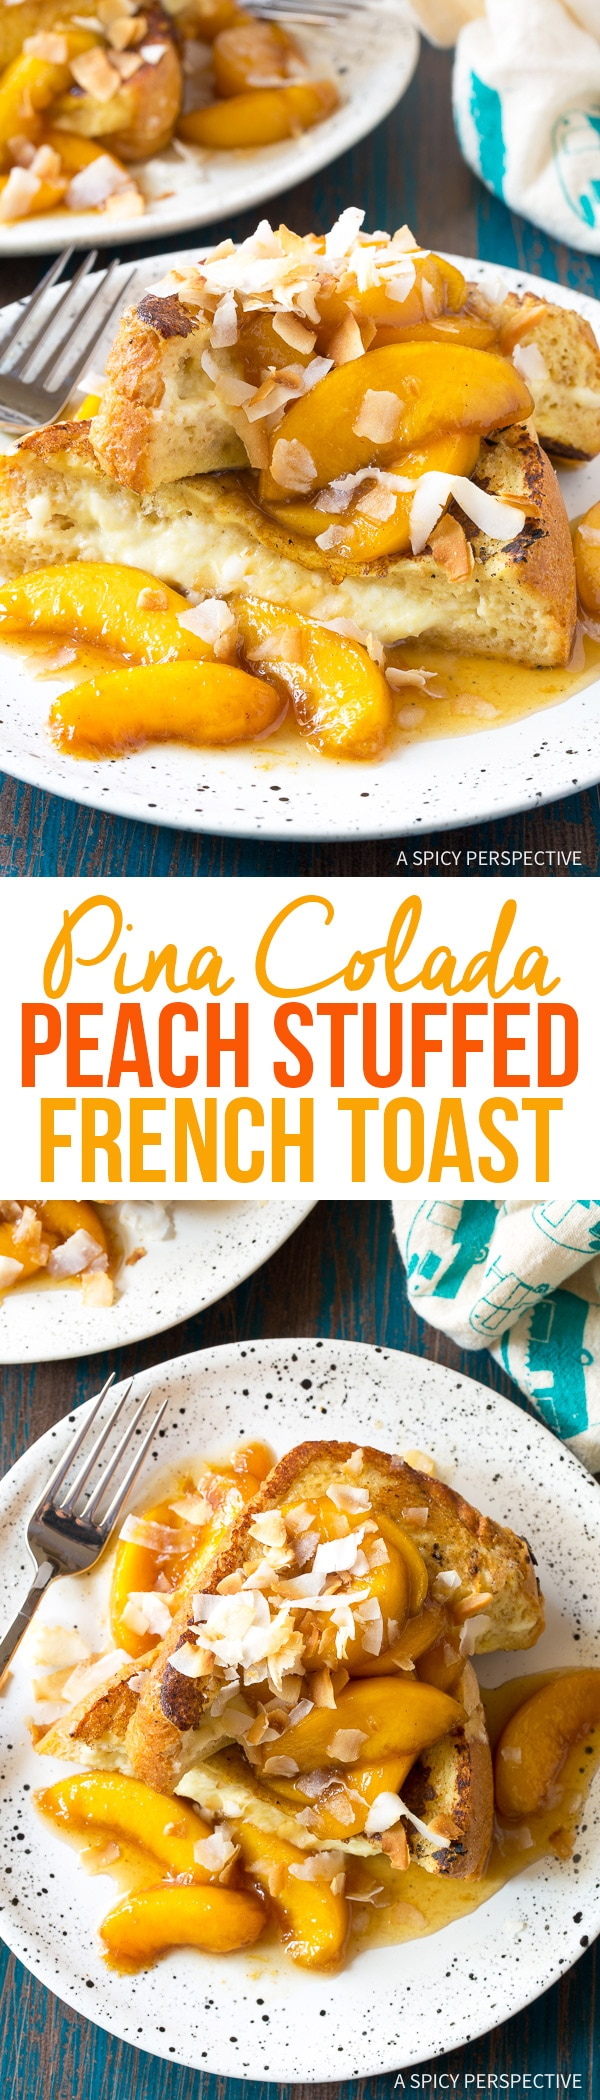 The Best Peach Pina Colada Stuffed French Toast Recipe